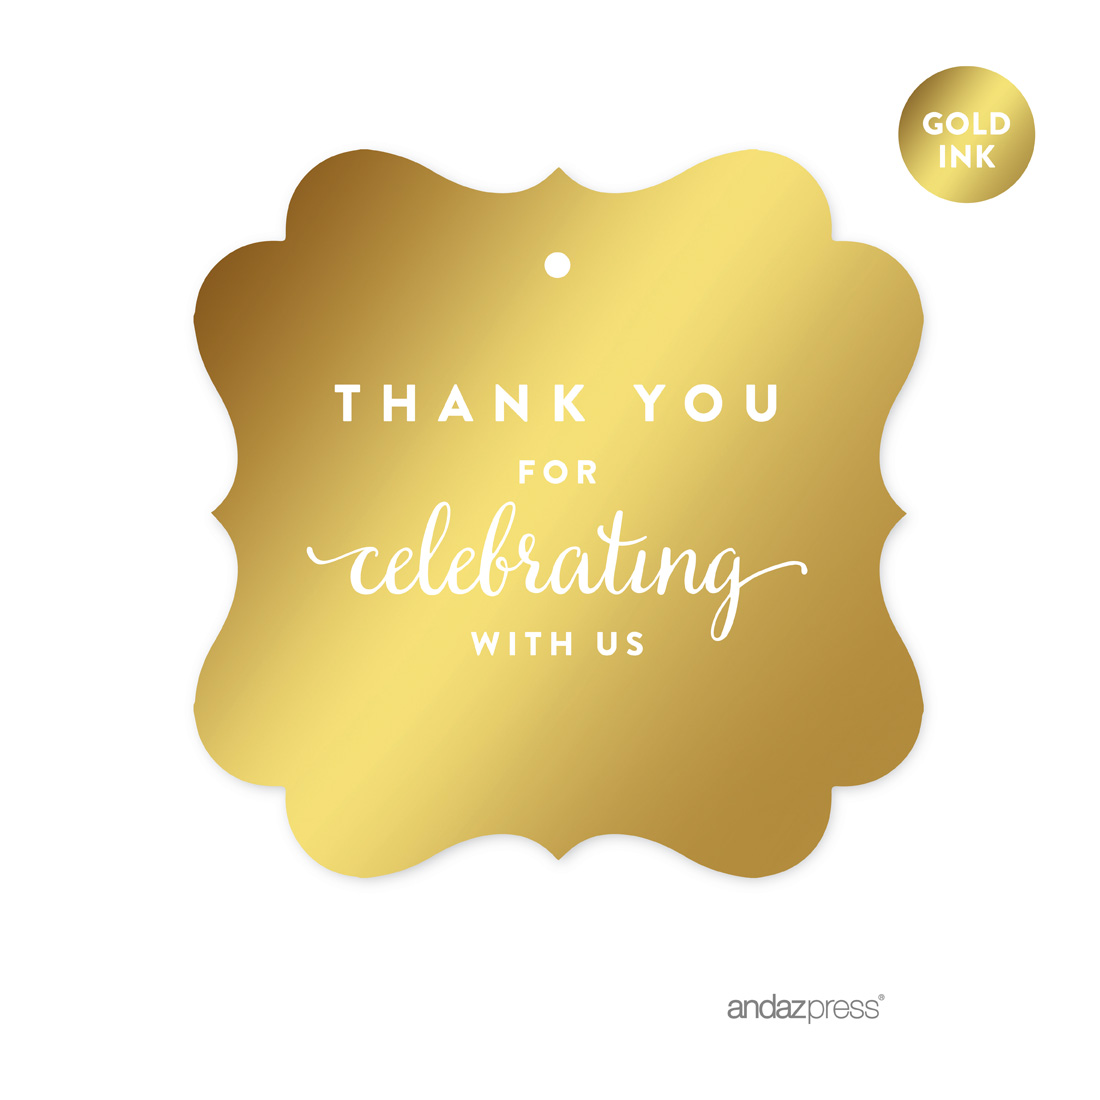 Thank You For Celebrating With Us! Gold Metallic Gold Fancy Frame Square Favor Gift Thank You Tags, 24-Pack